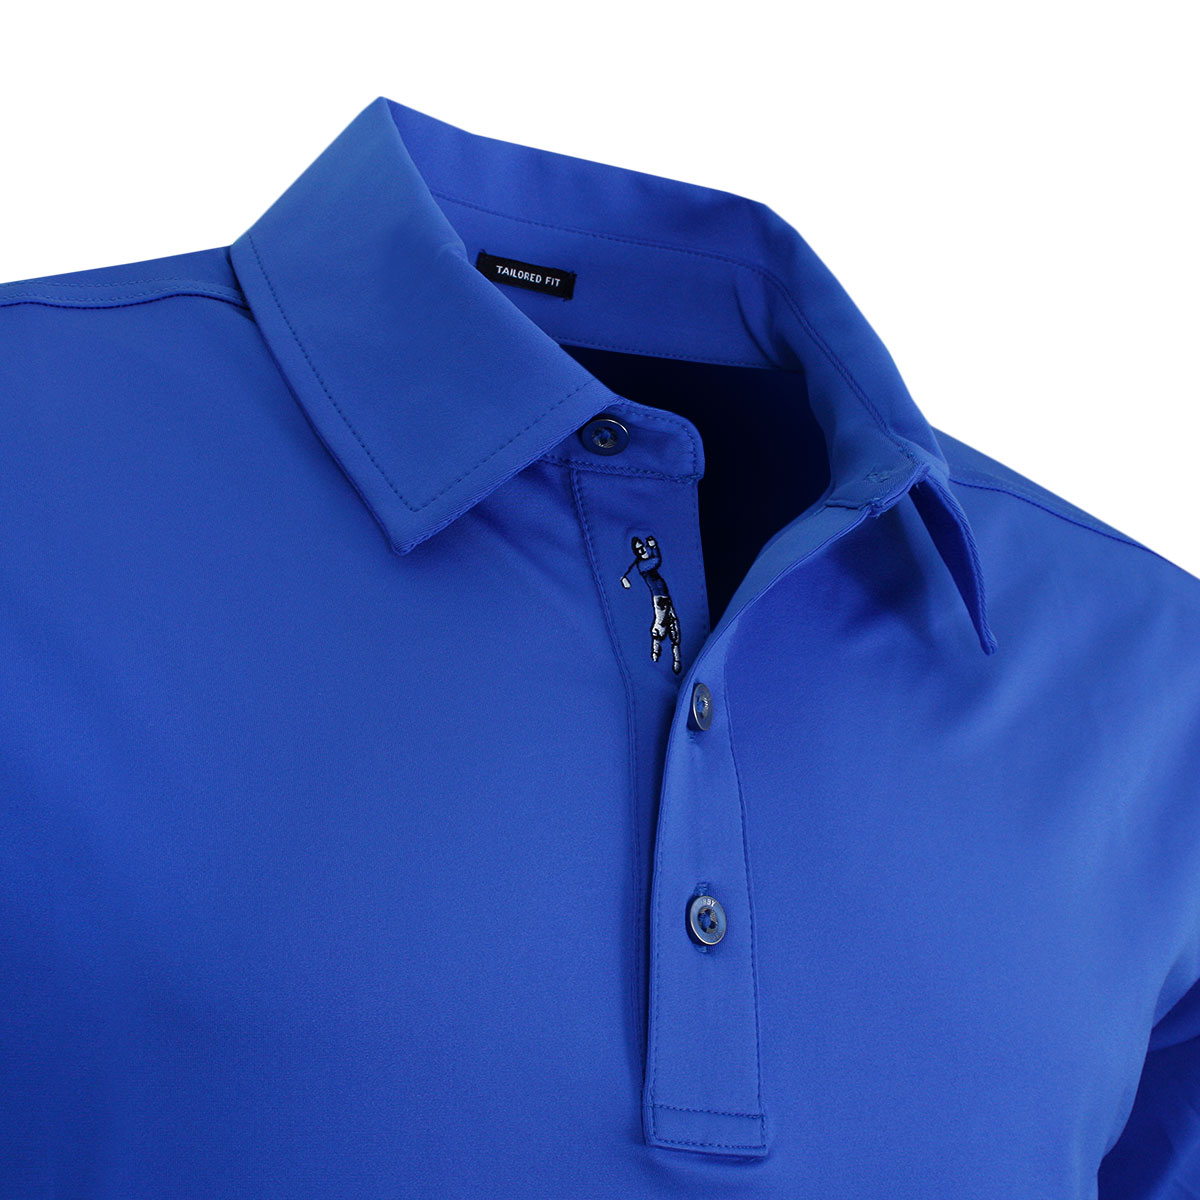 Bobby-Jones-Mens-XH2O-Perf-Solid-Jersey-TF-Golf-Polo-Shirt-69-OFF-RRP thumbnail 11